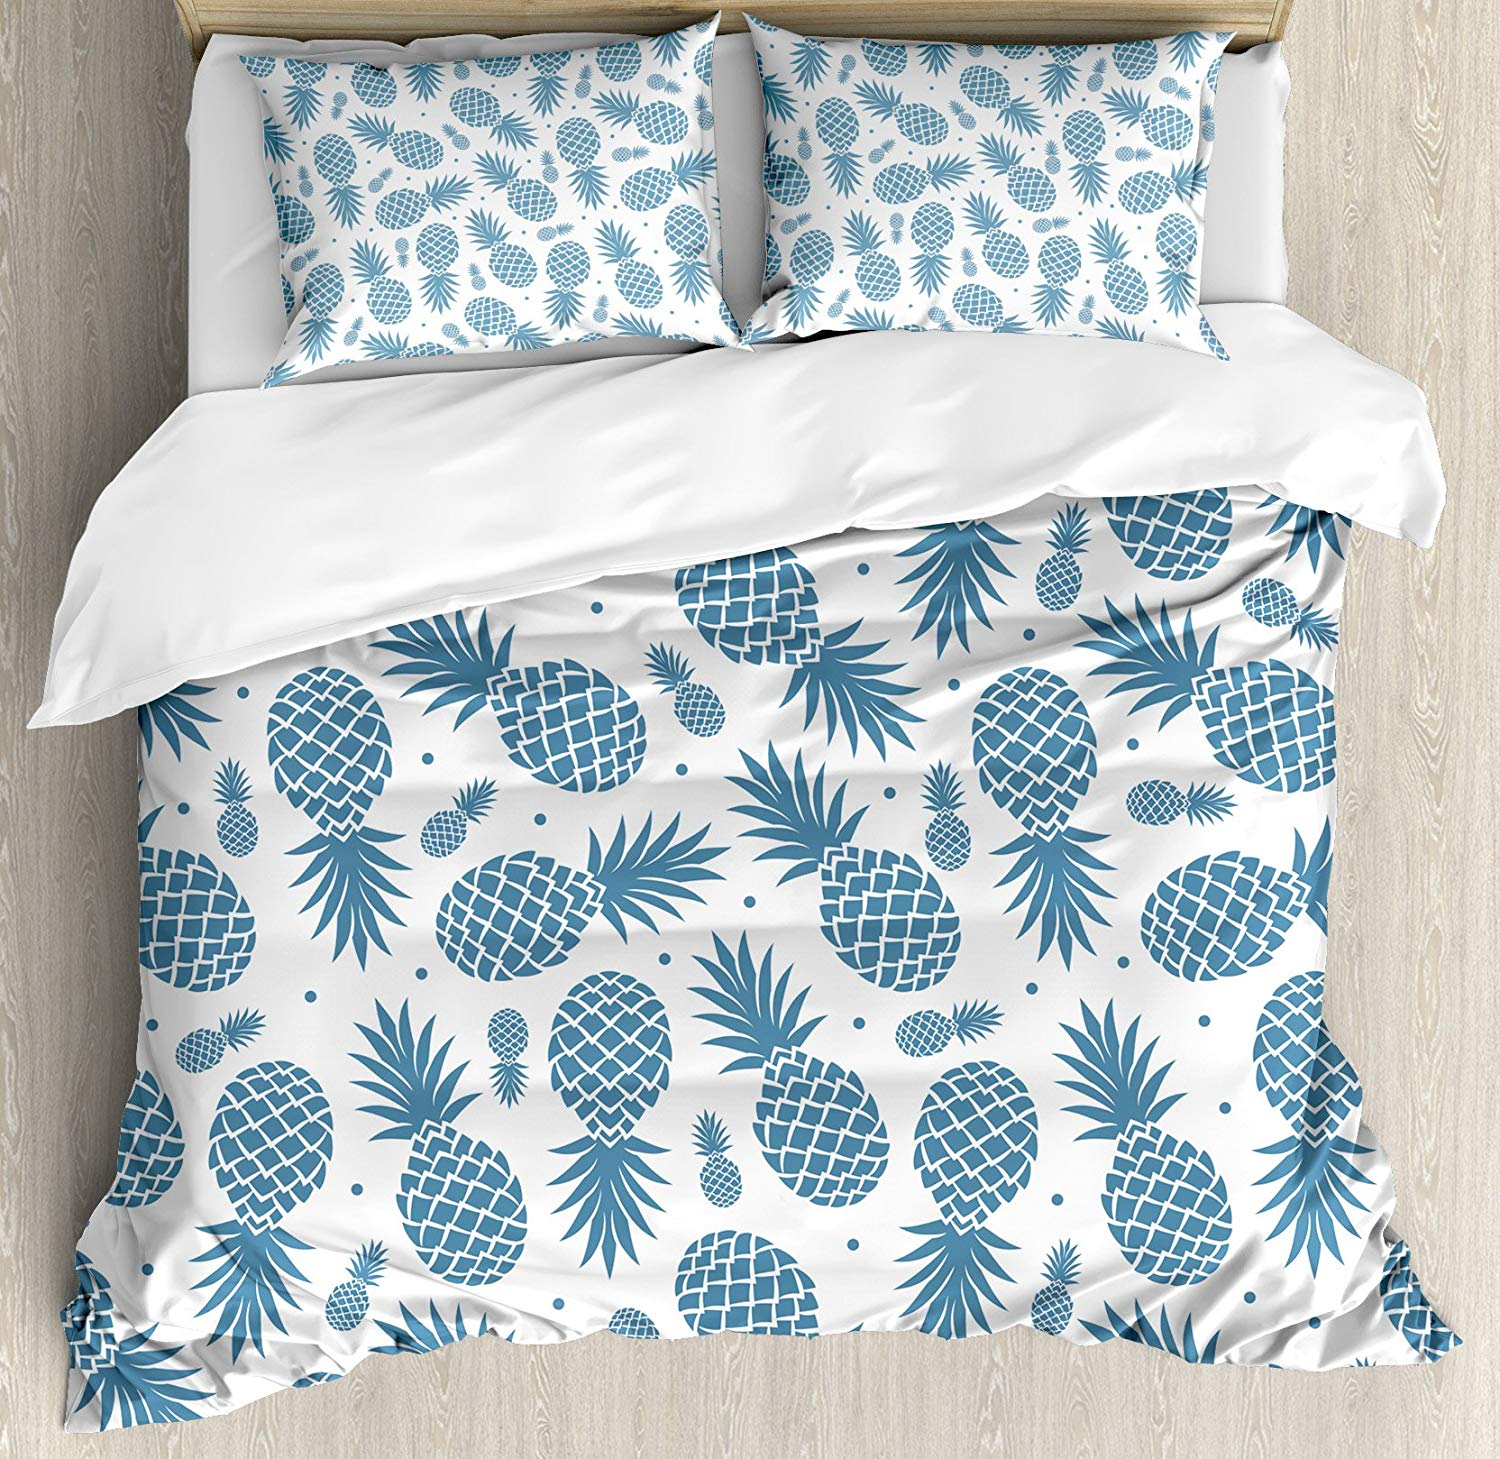 Pineapple Duvet Cover Set Island Themed Minimalistic Multi-Sized Tropic Fruity Pineapple Printed Vintage 3/4pcs Bedding Set